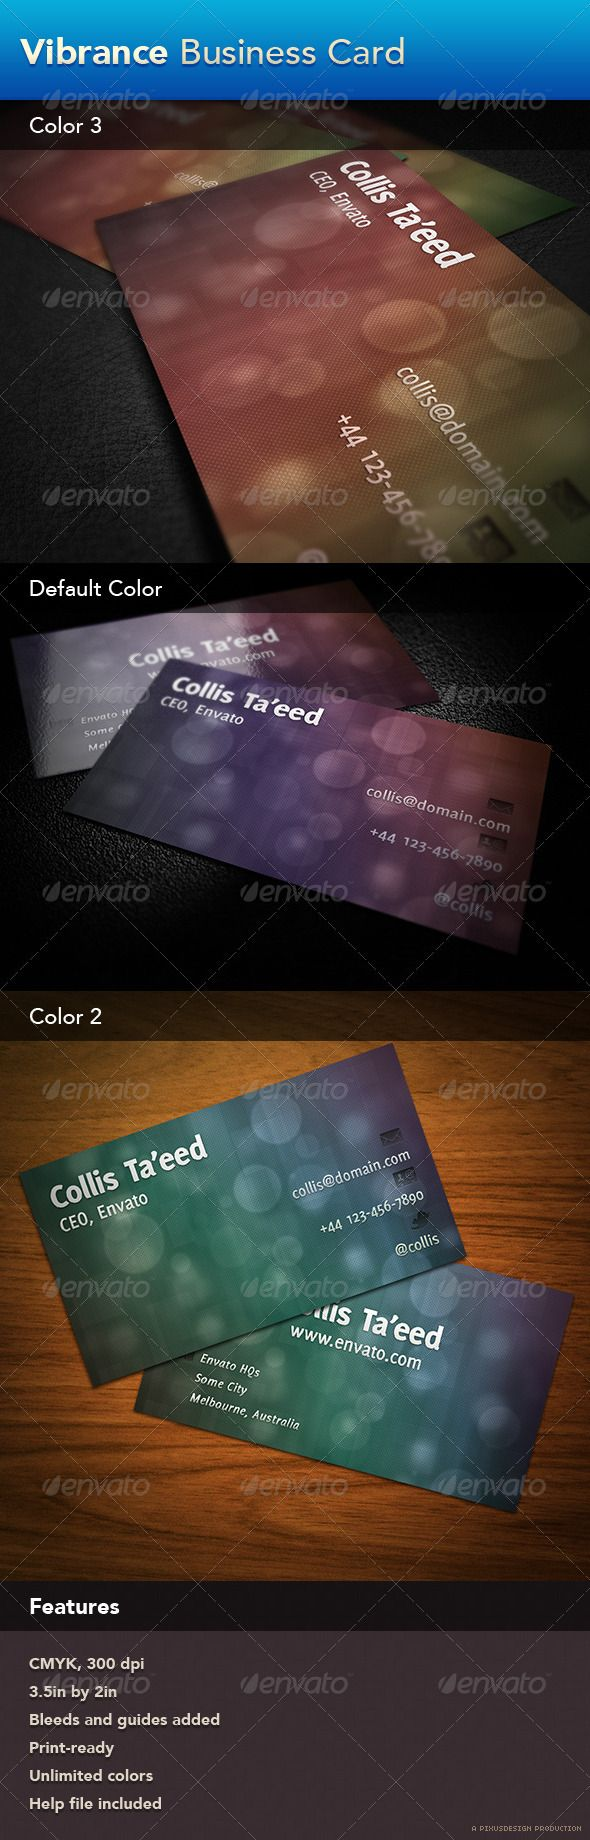 Vibrance Business Card - Corporate #Business #Cards Download here: https://graphicriver.net/item/vibrance-business-card/263159?ref=alena994